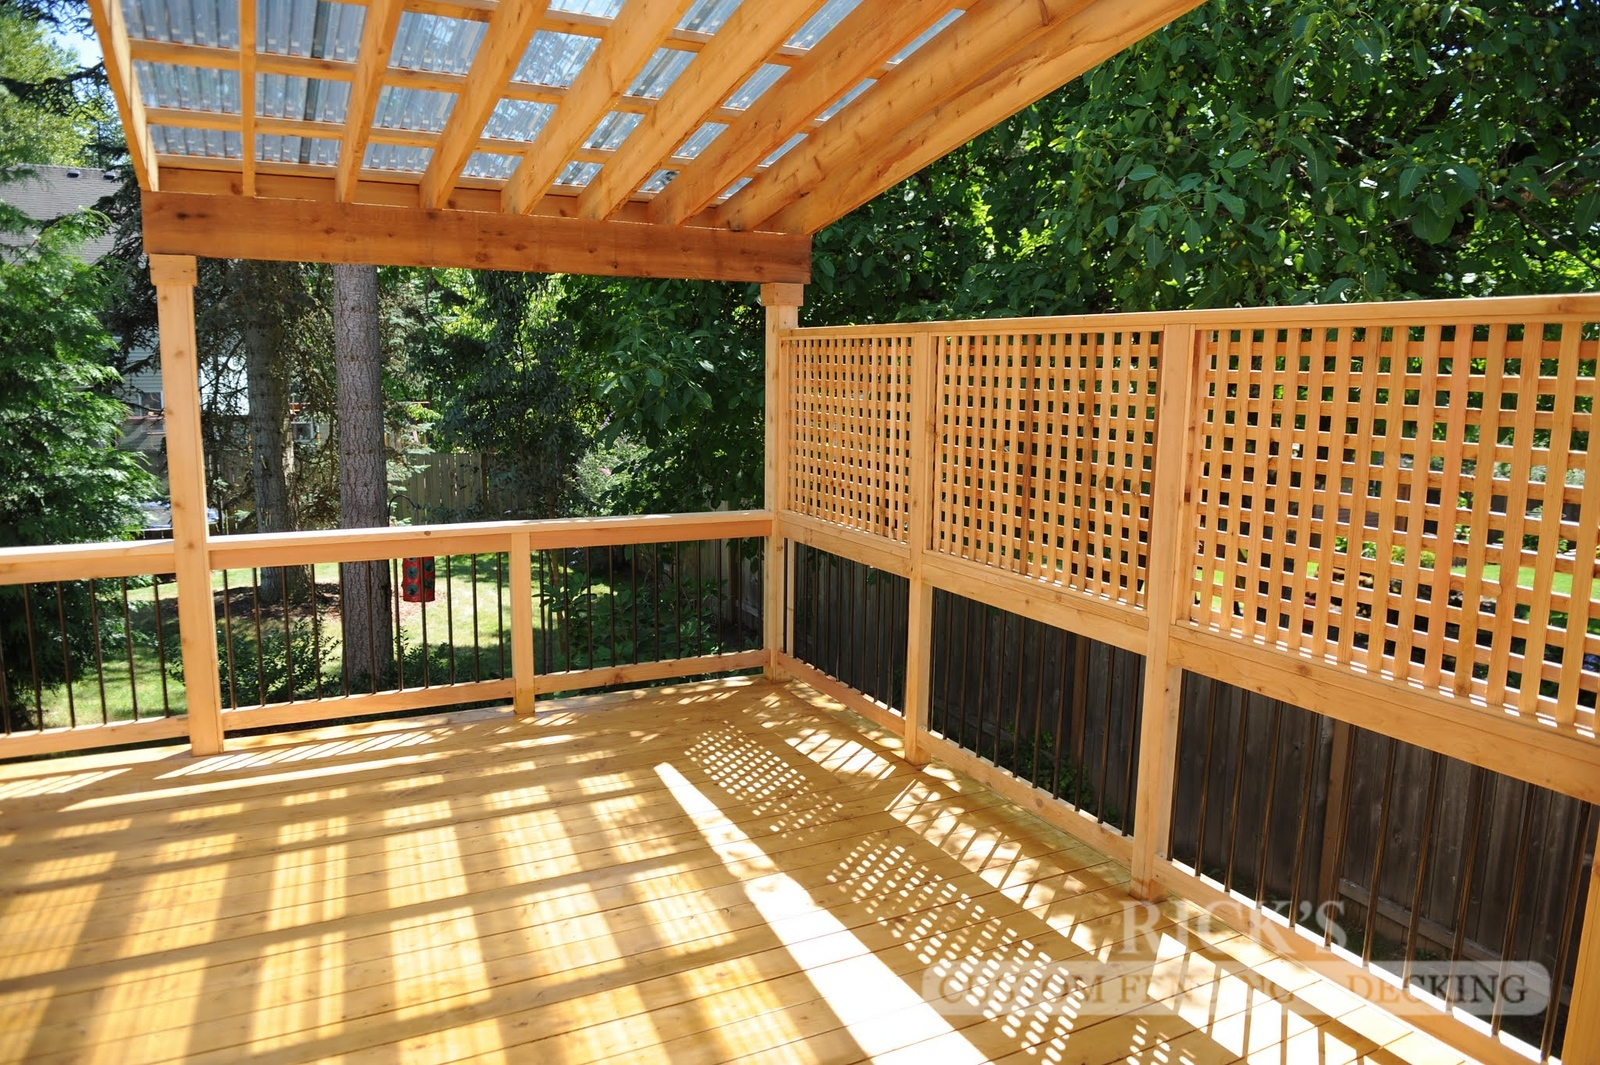 5130 - Wood-Framed Patio Cover with Acrylic Paneling